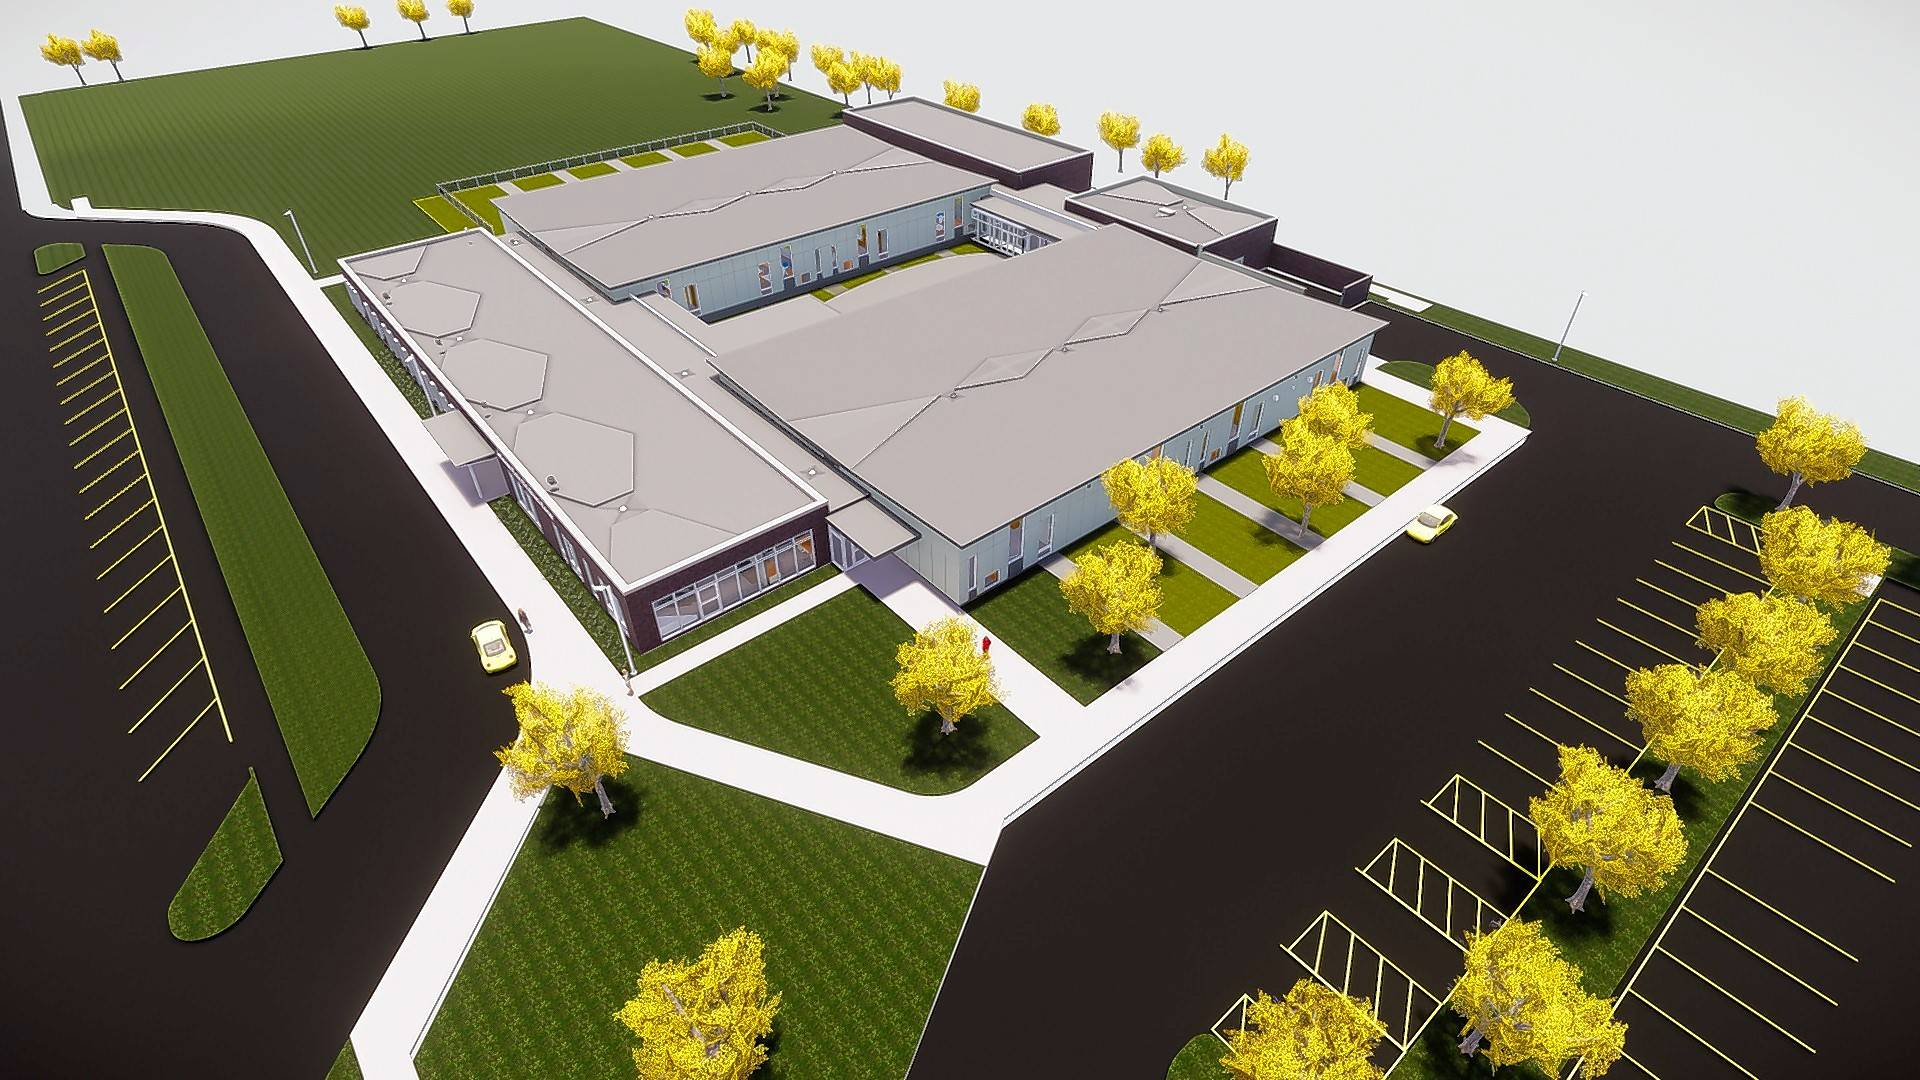 A rendering shows a proposed rebuilt Jefferson Early Childhood Center campus.